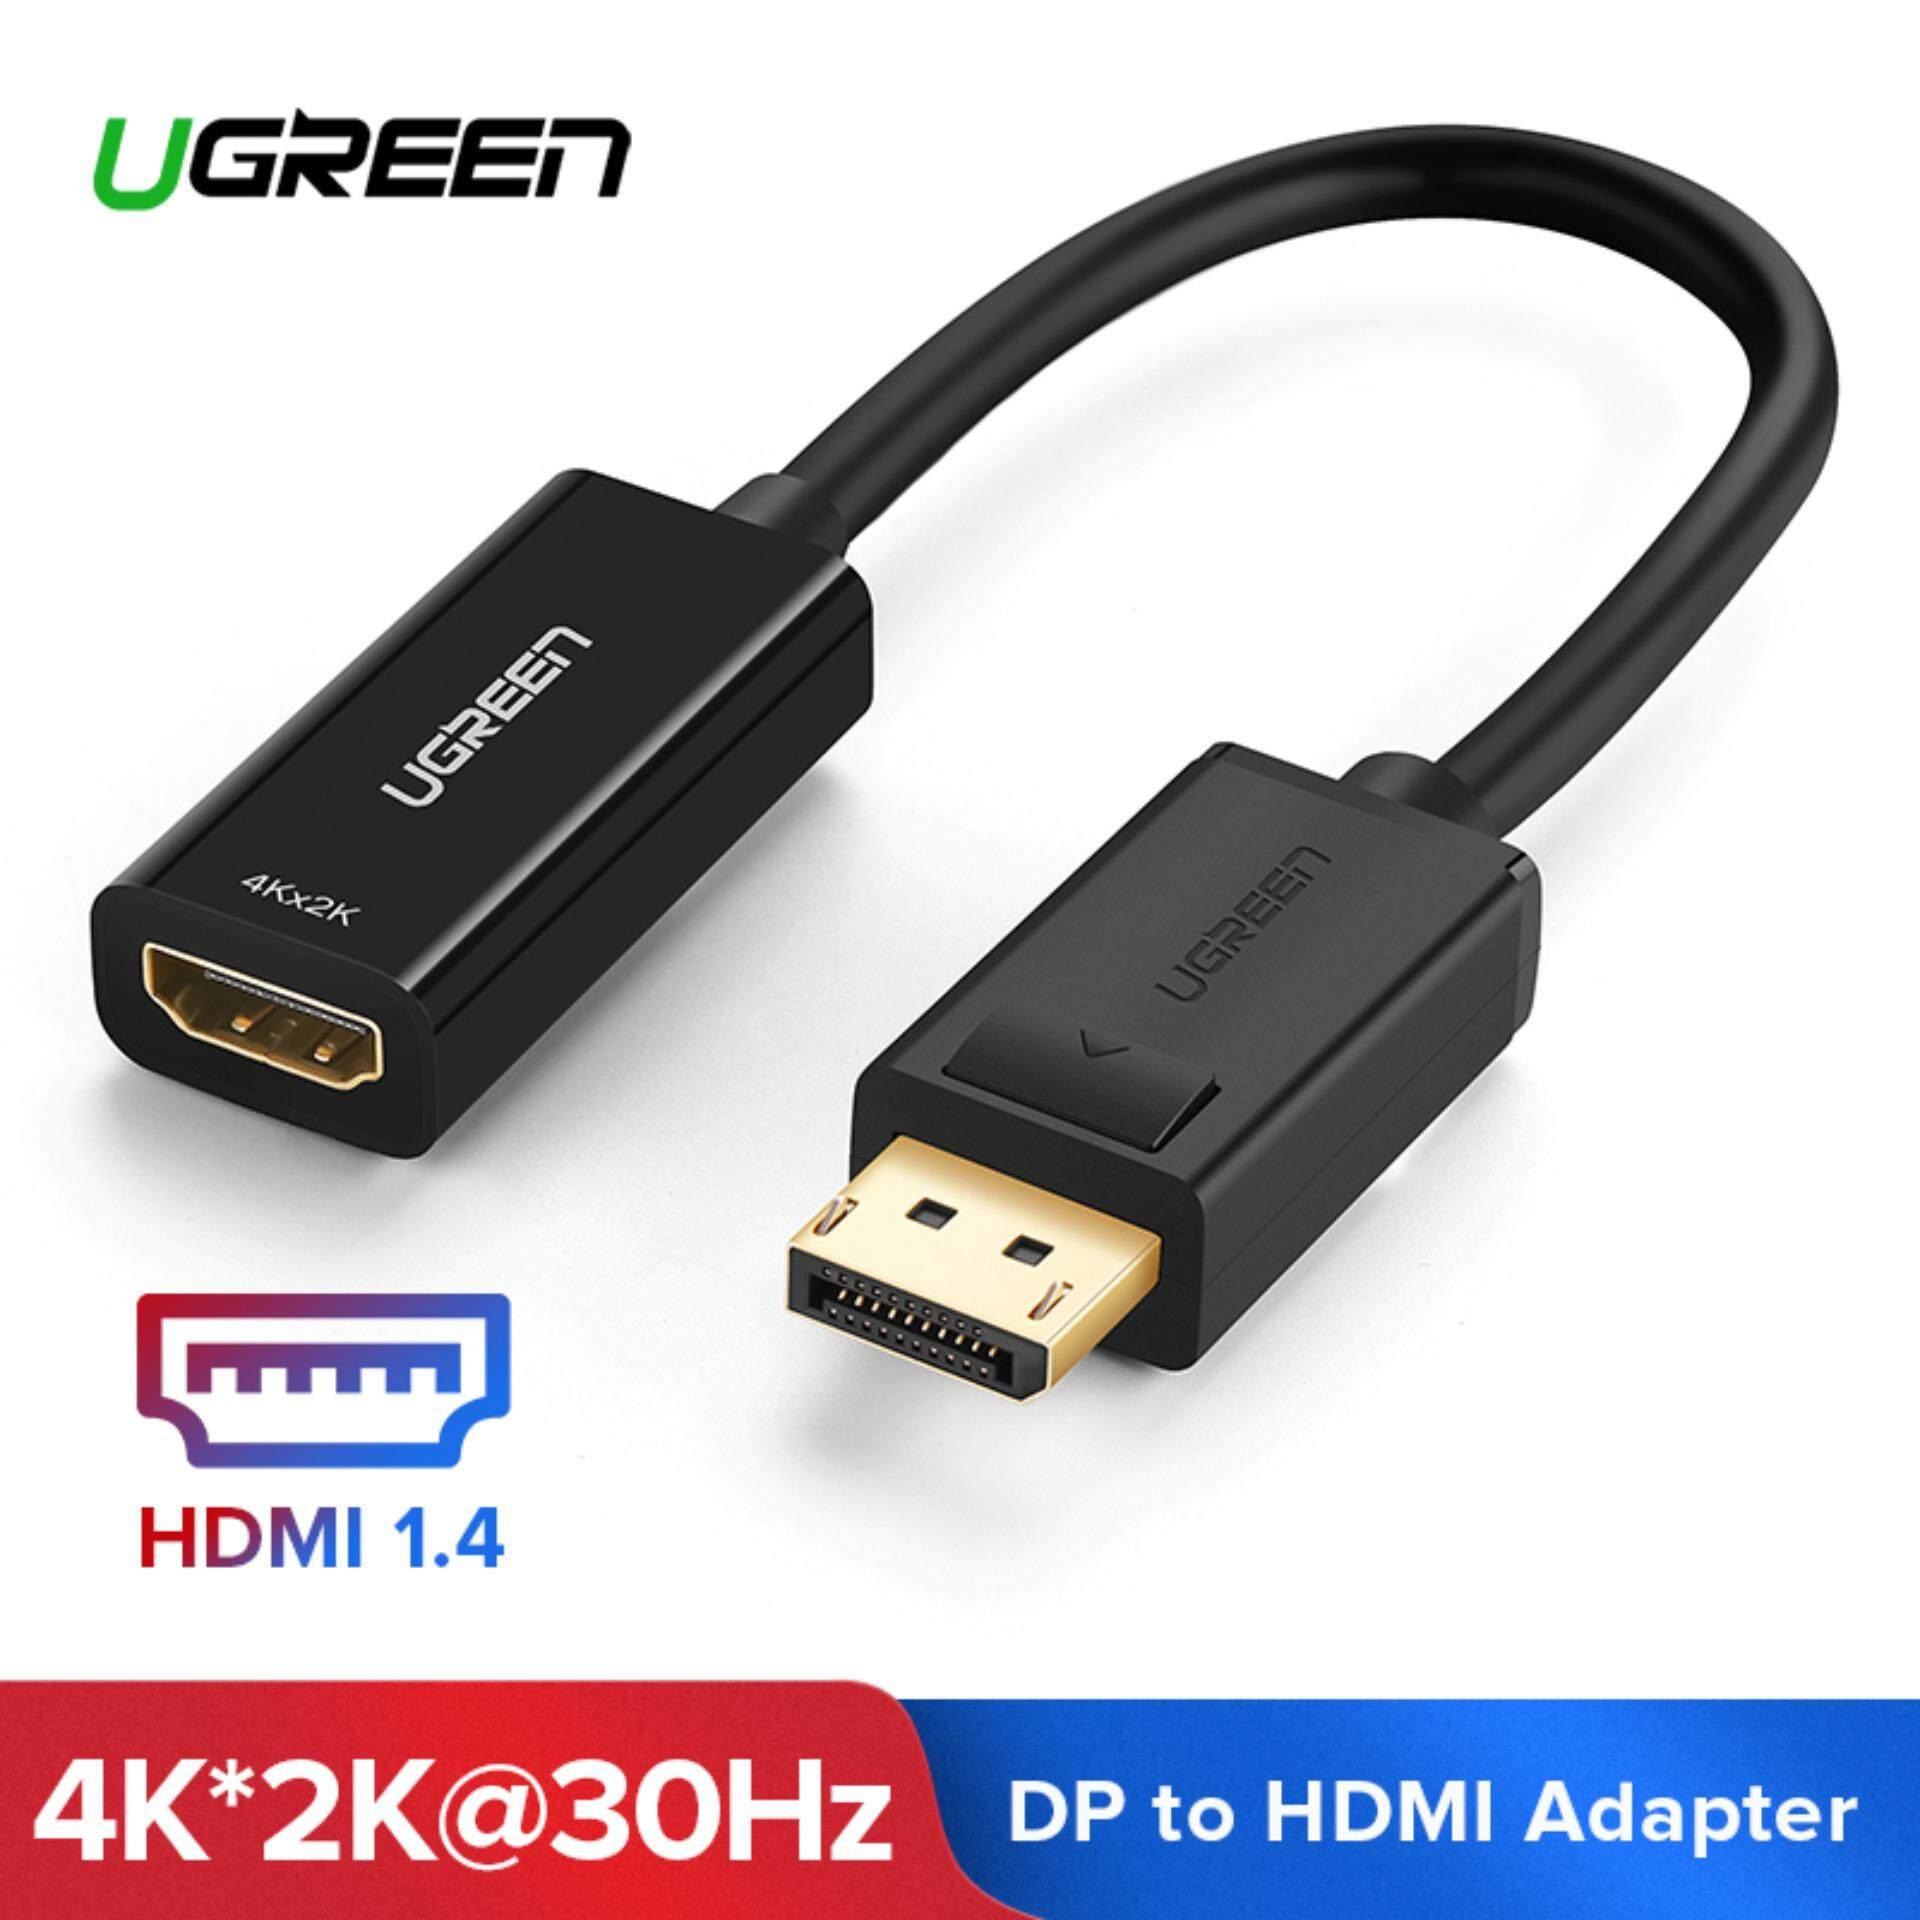 Display Displayport Ugreen 4k 2k Displayport Dp Male To Hdmi Female Cable Adapter Display Port Converter For Projector Hp Dell Laptop My